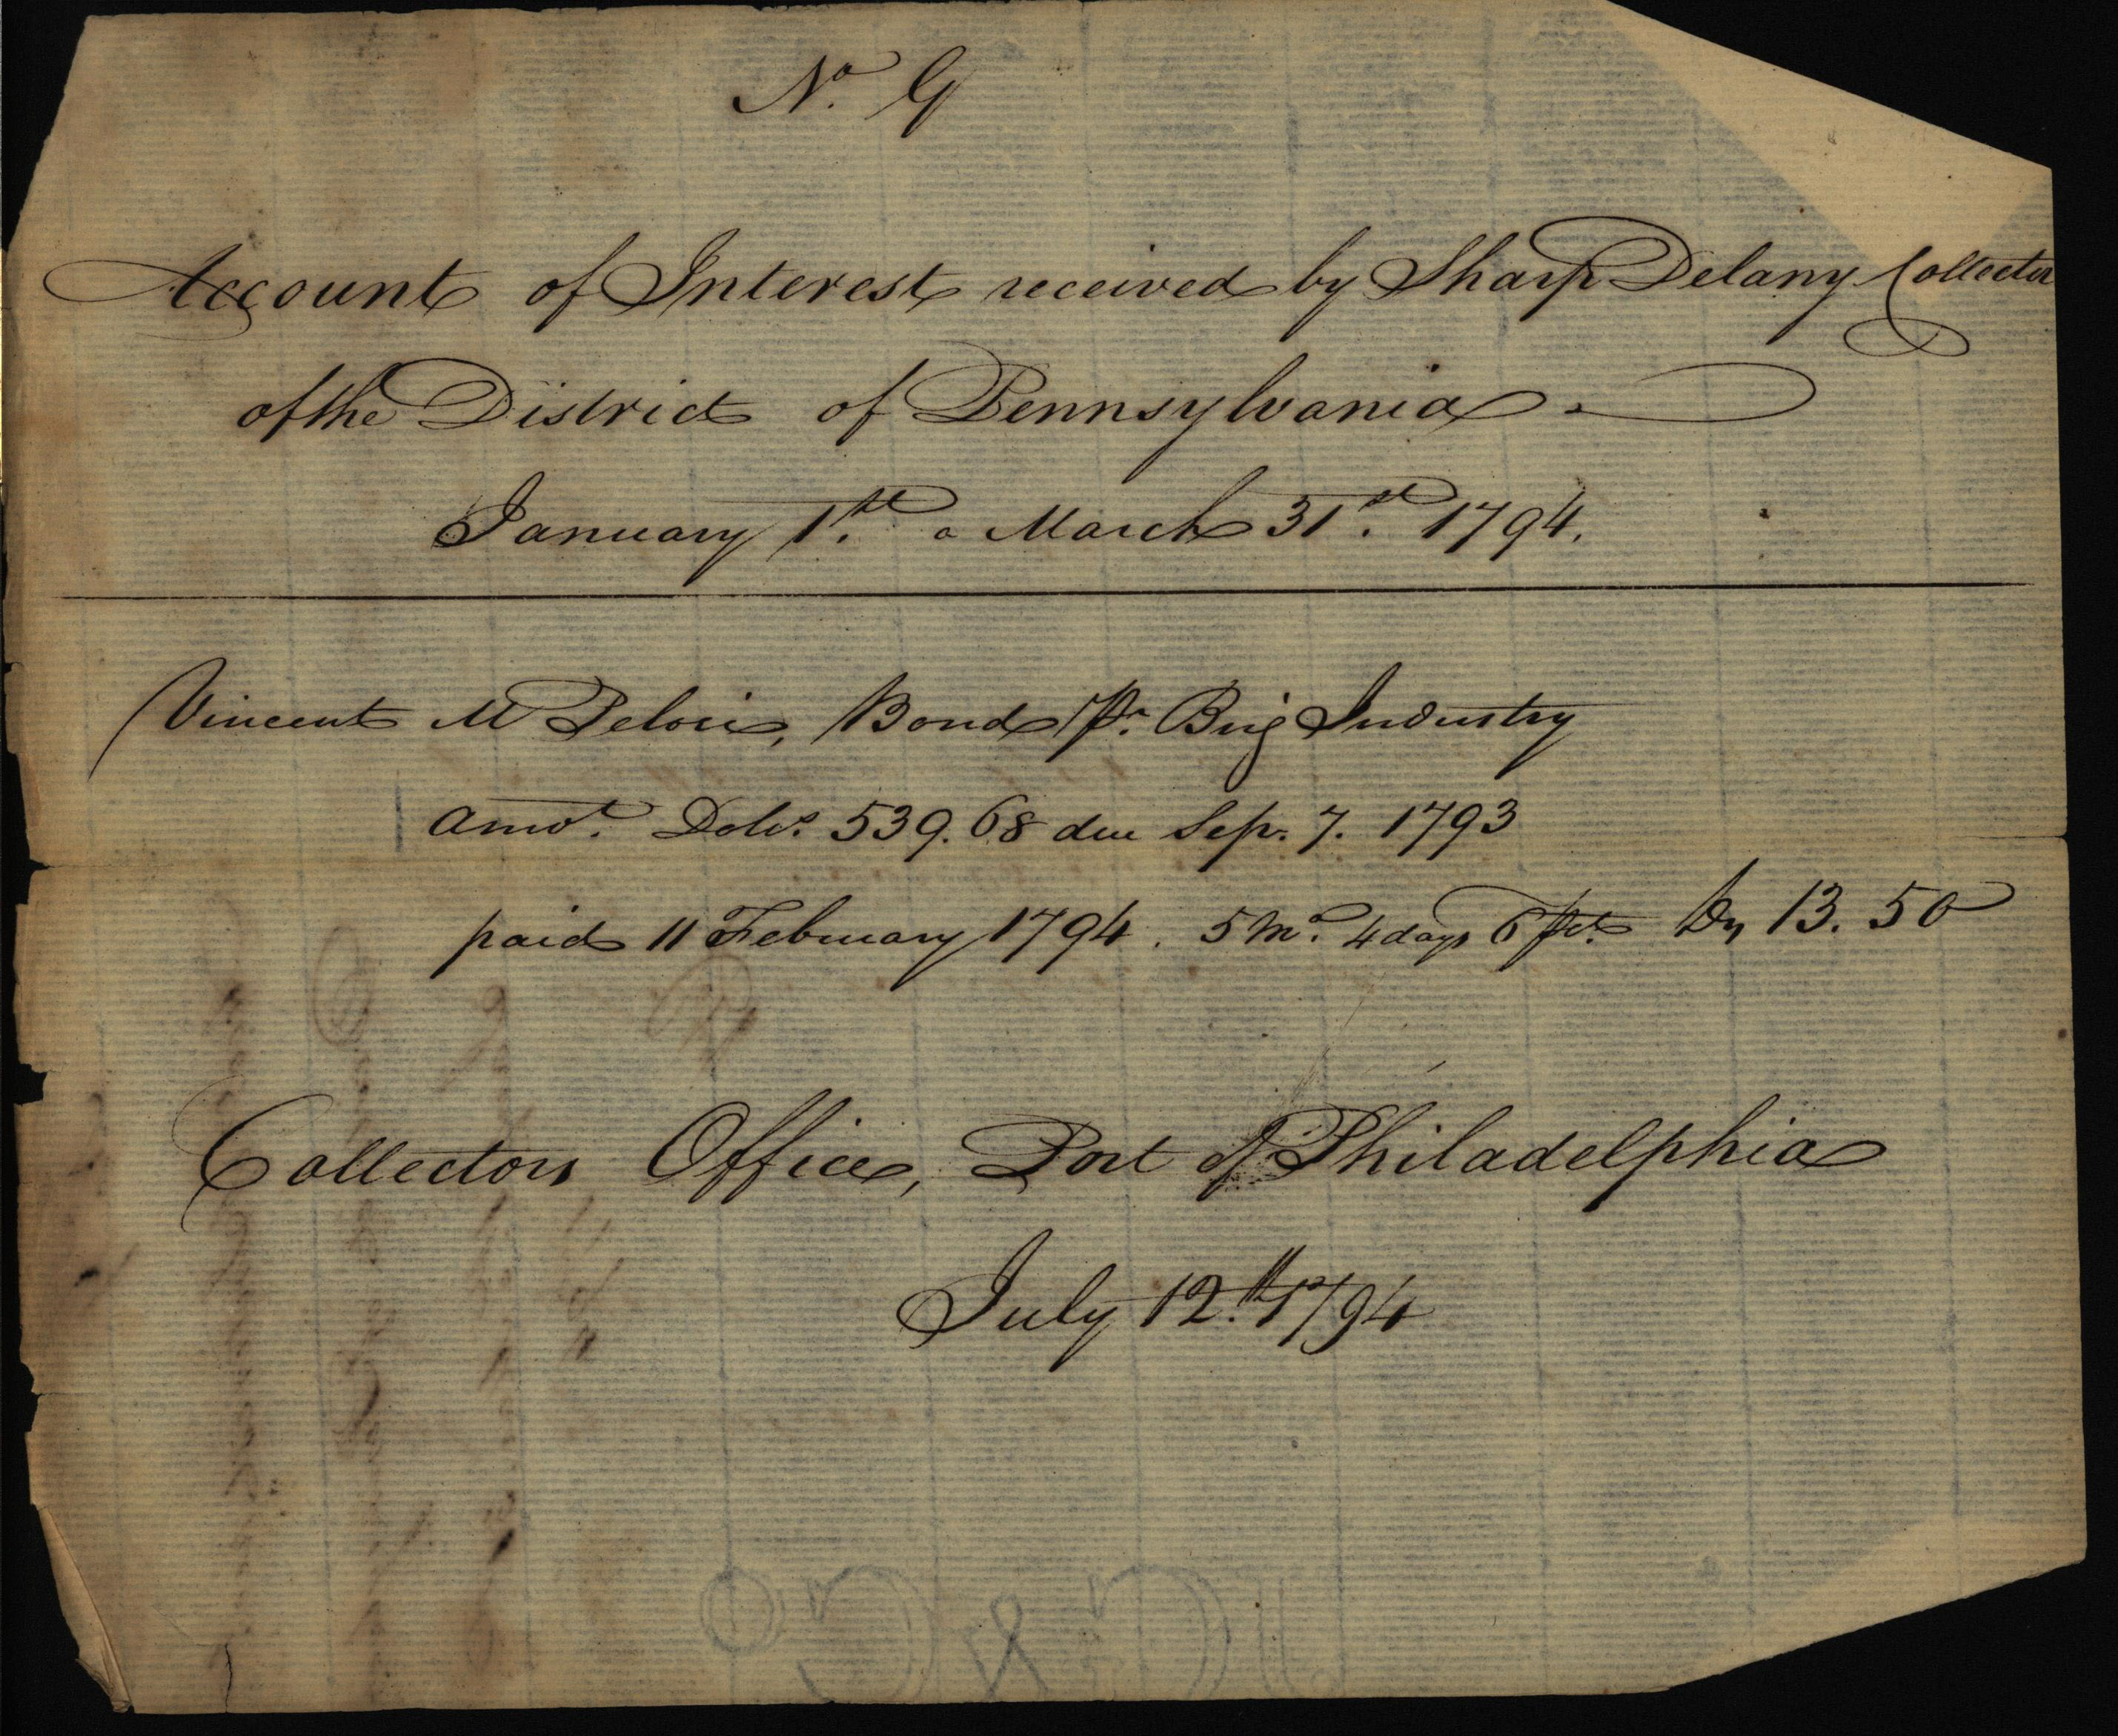 Account of interest received by Sharp Delany, Collector, 1794